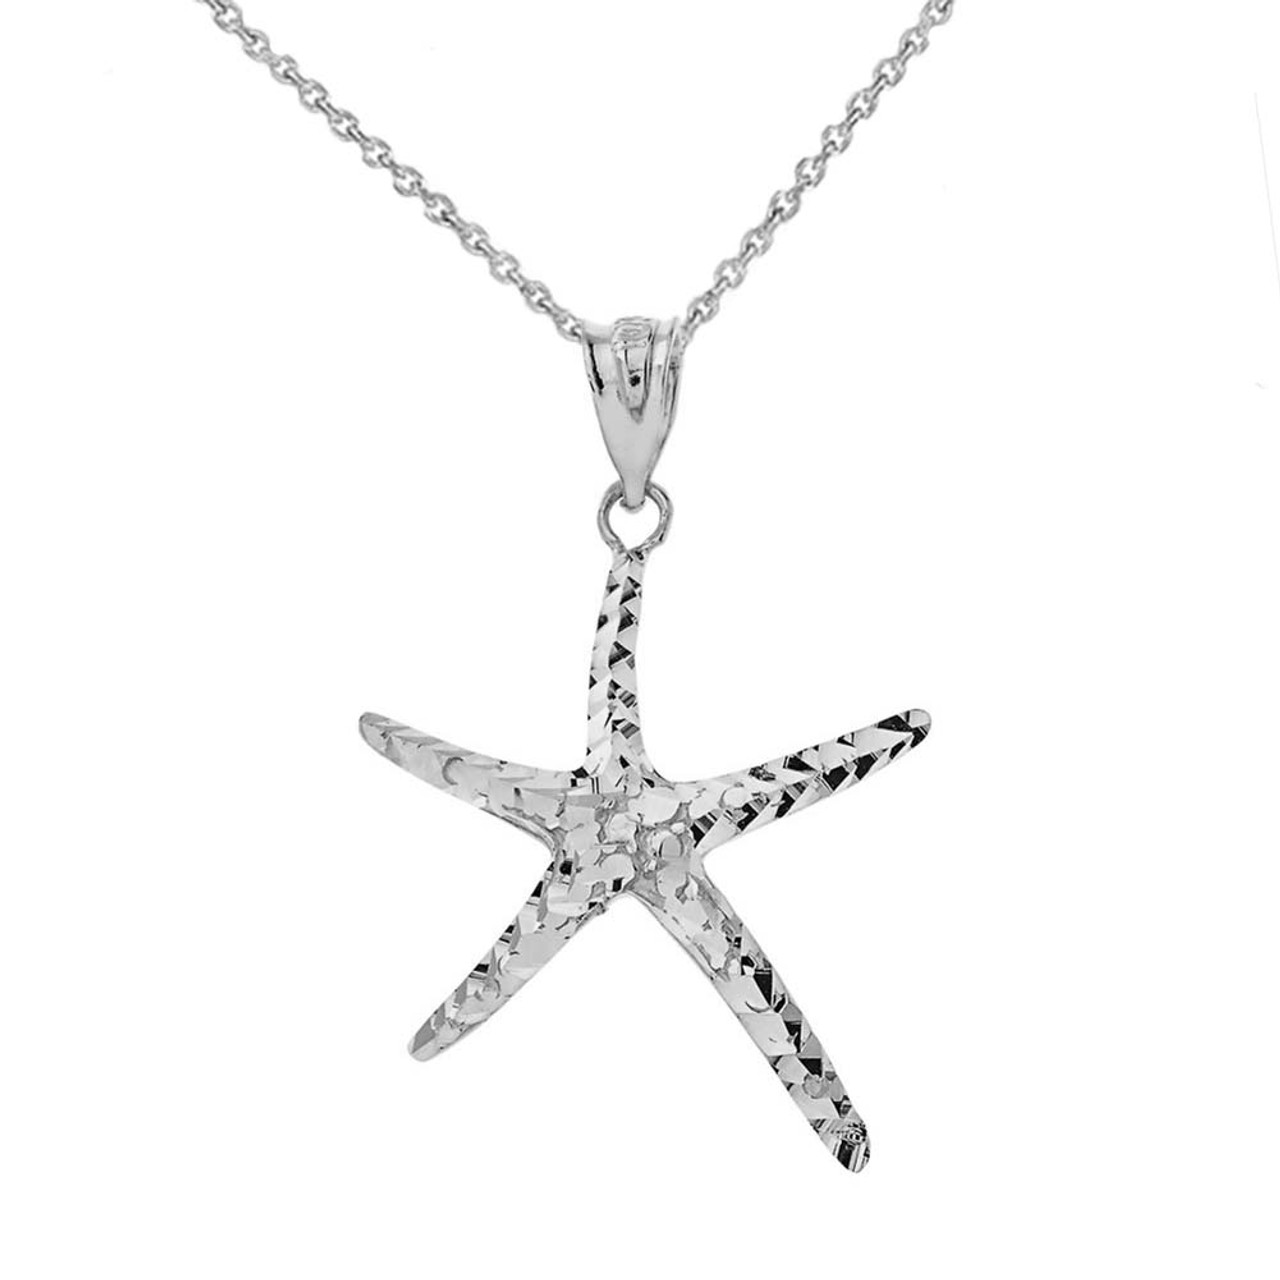 New .925 Sterling Silver Starfish Pendant Necklace